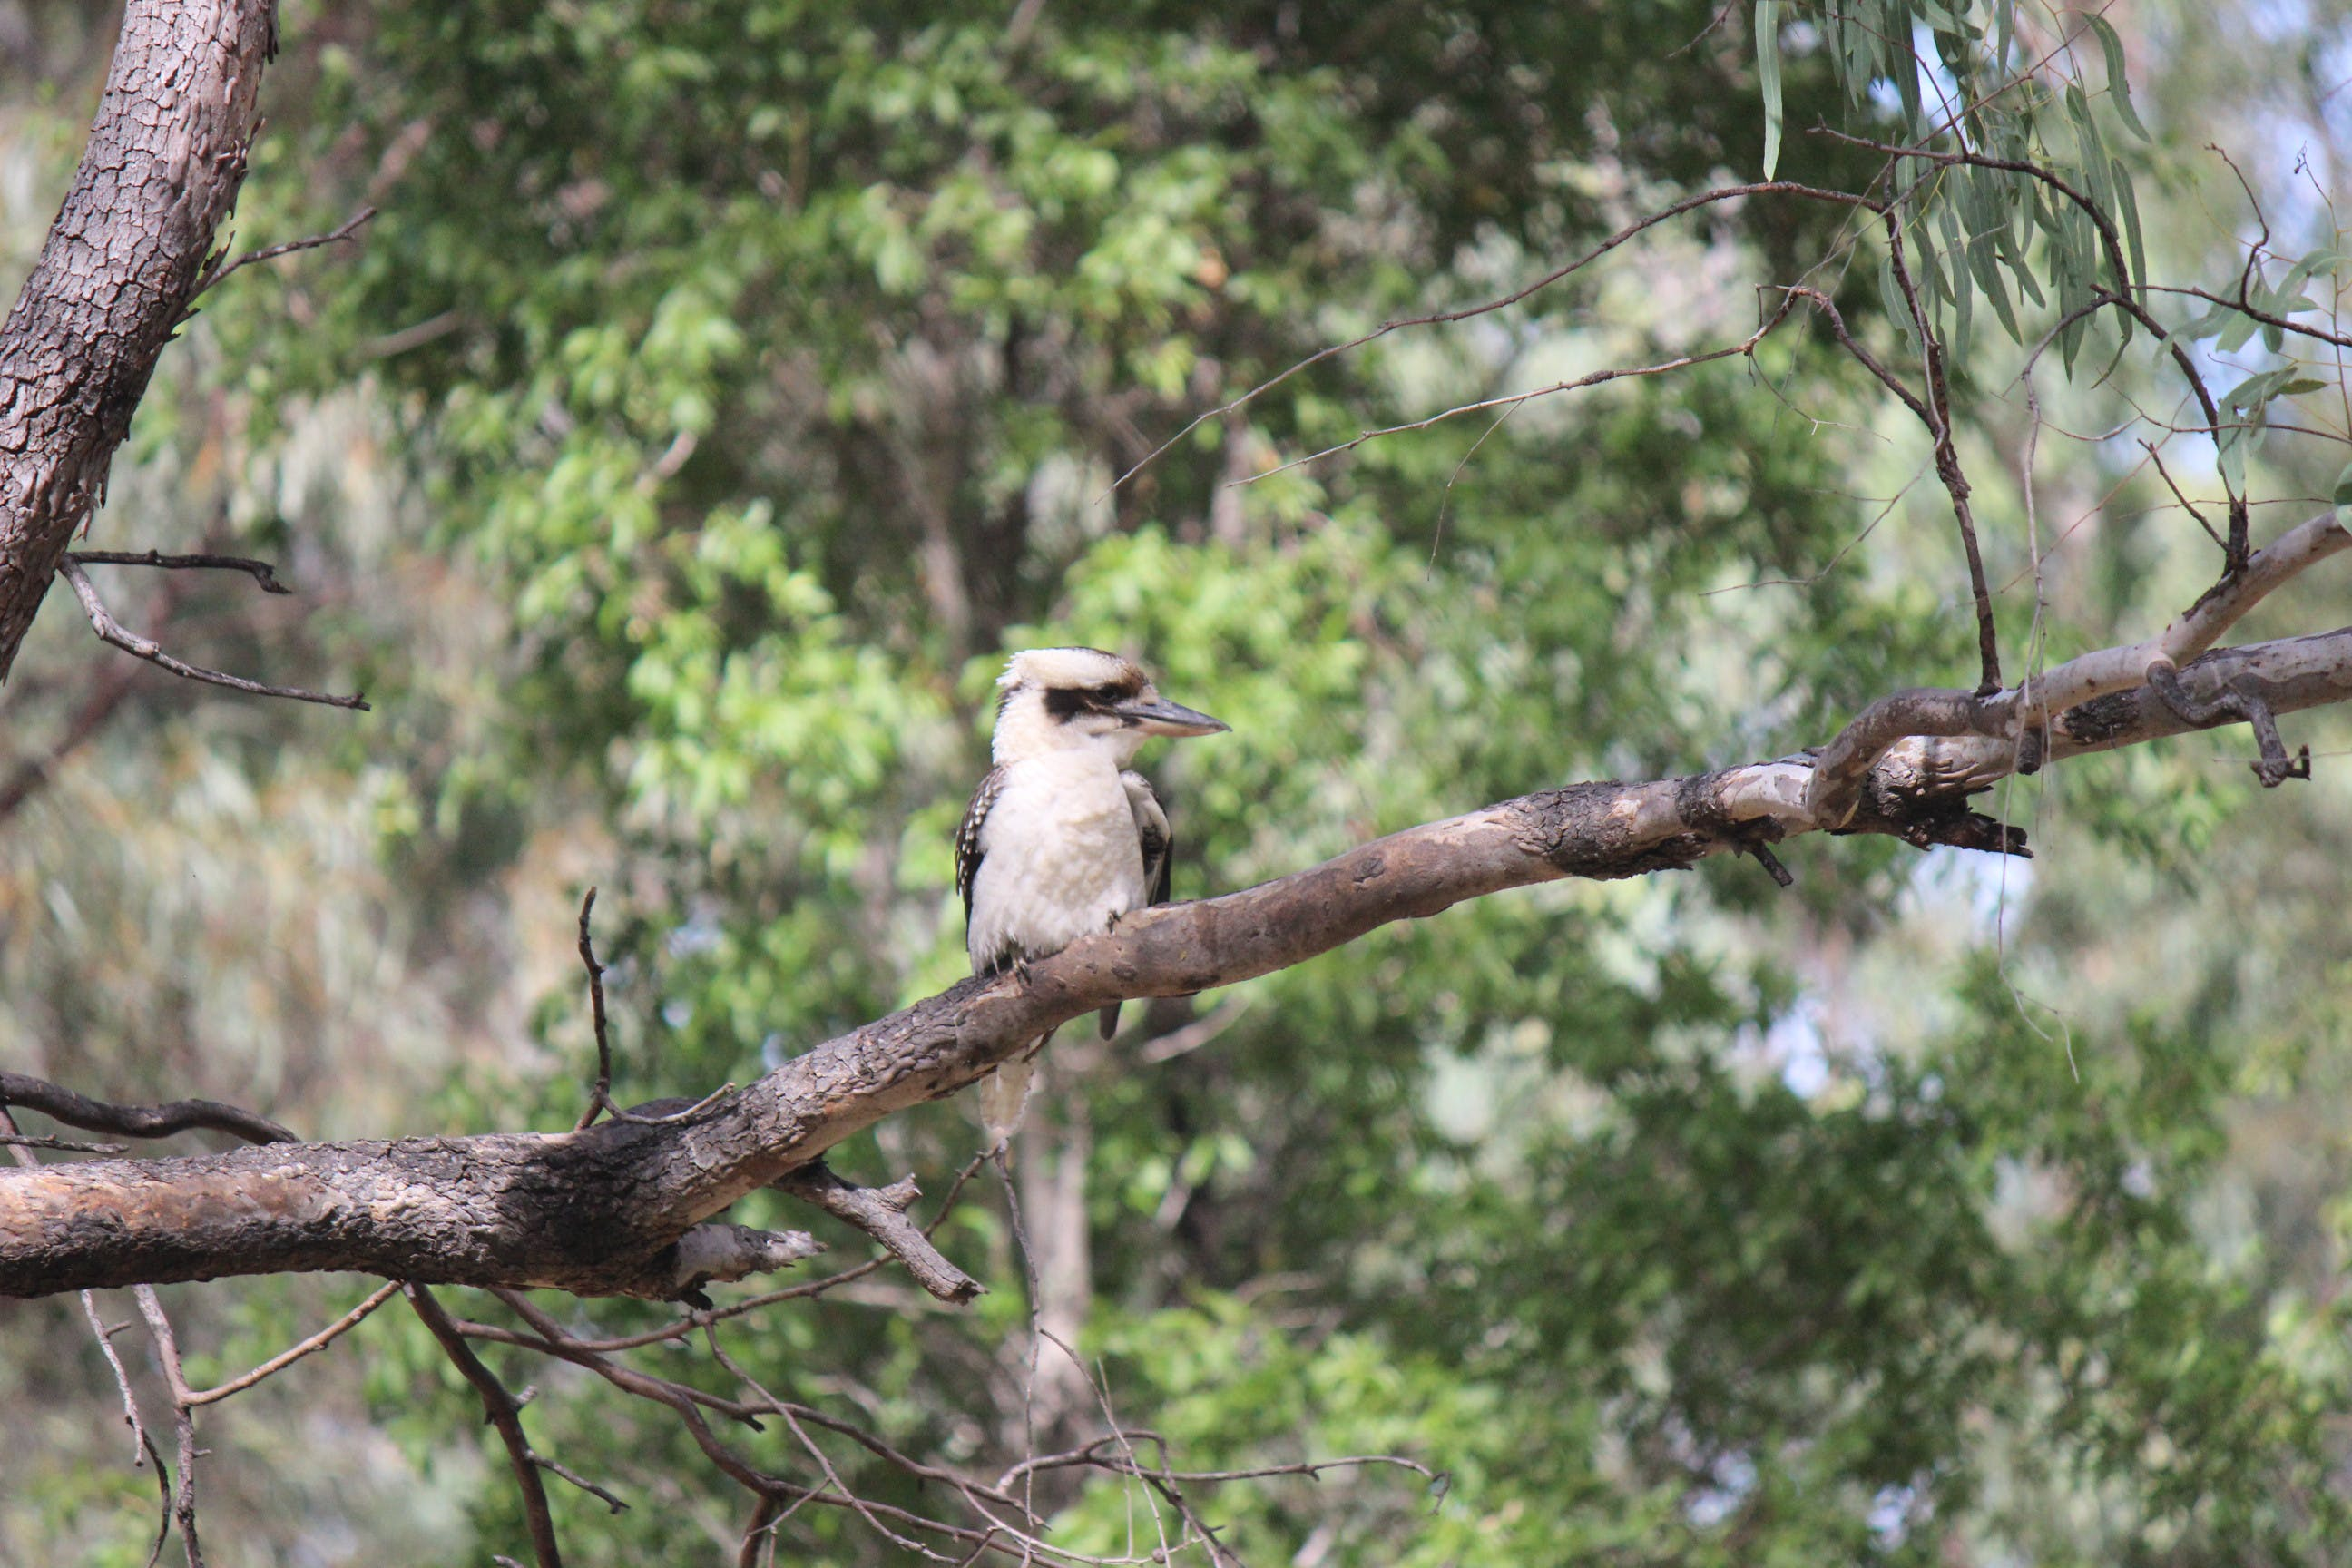 Brown and White Kookaburra Perched on Tree